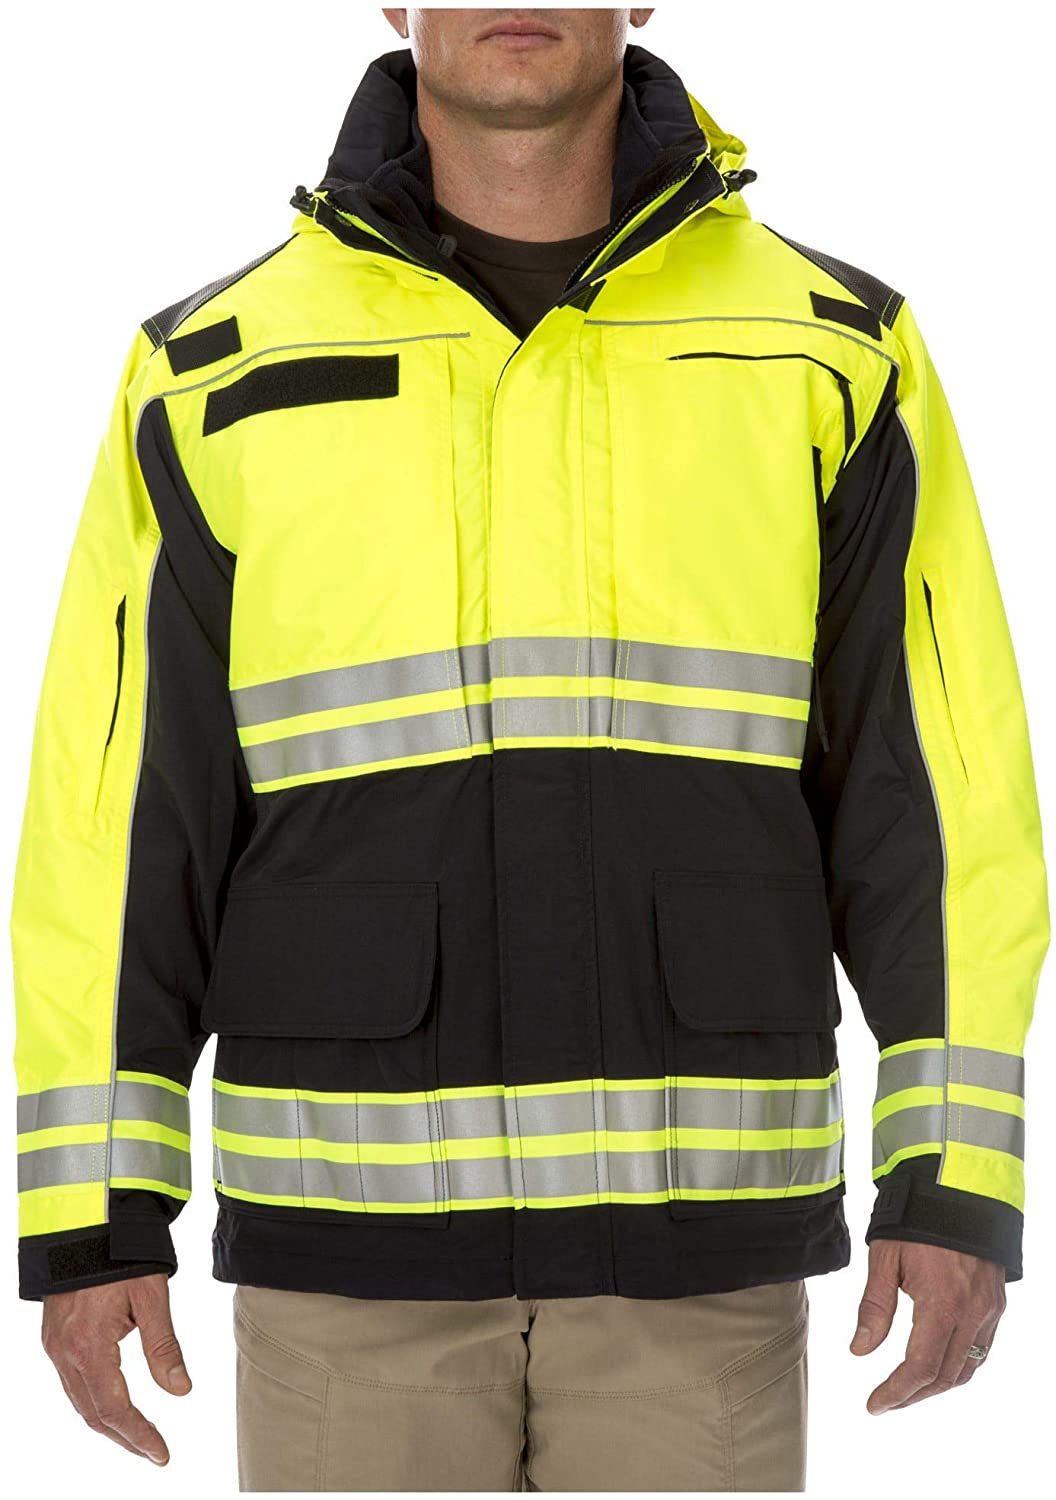 5.11 Tactical EMS Professionals Responder Parka - High-Visibility, Style 48073